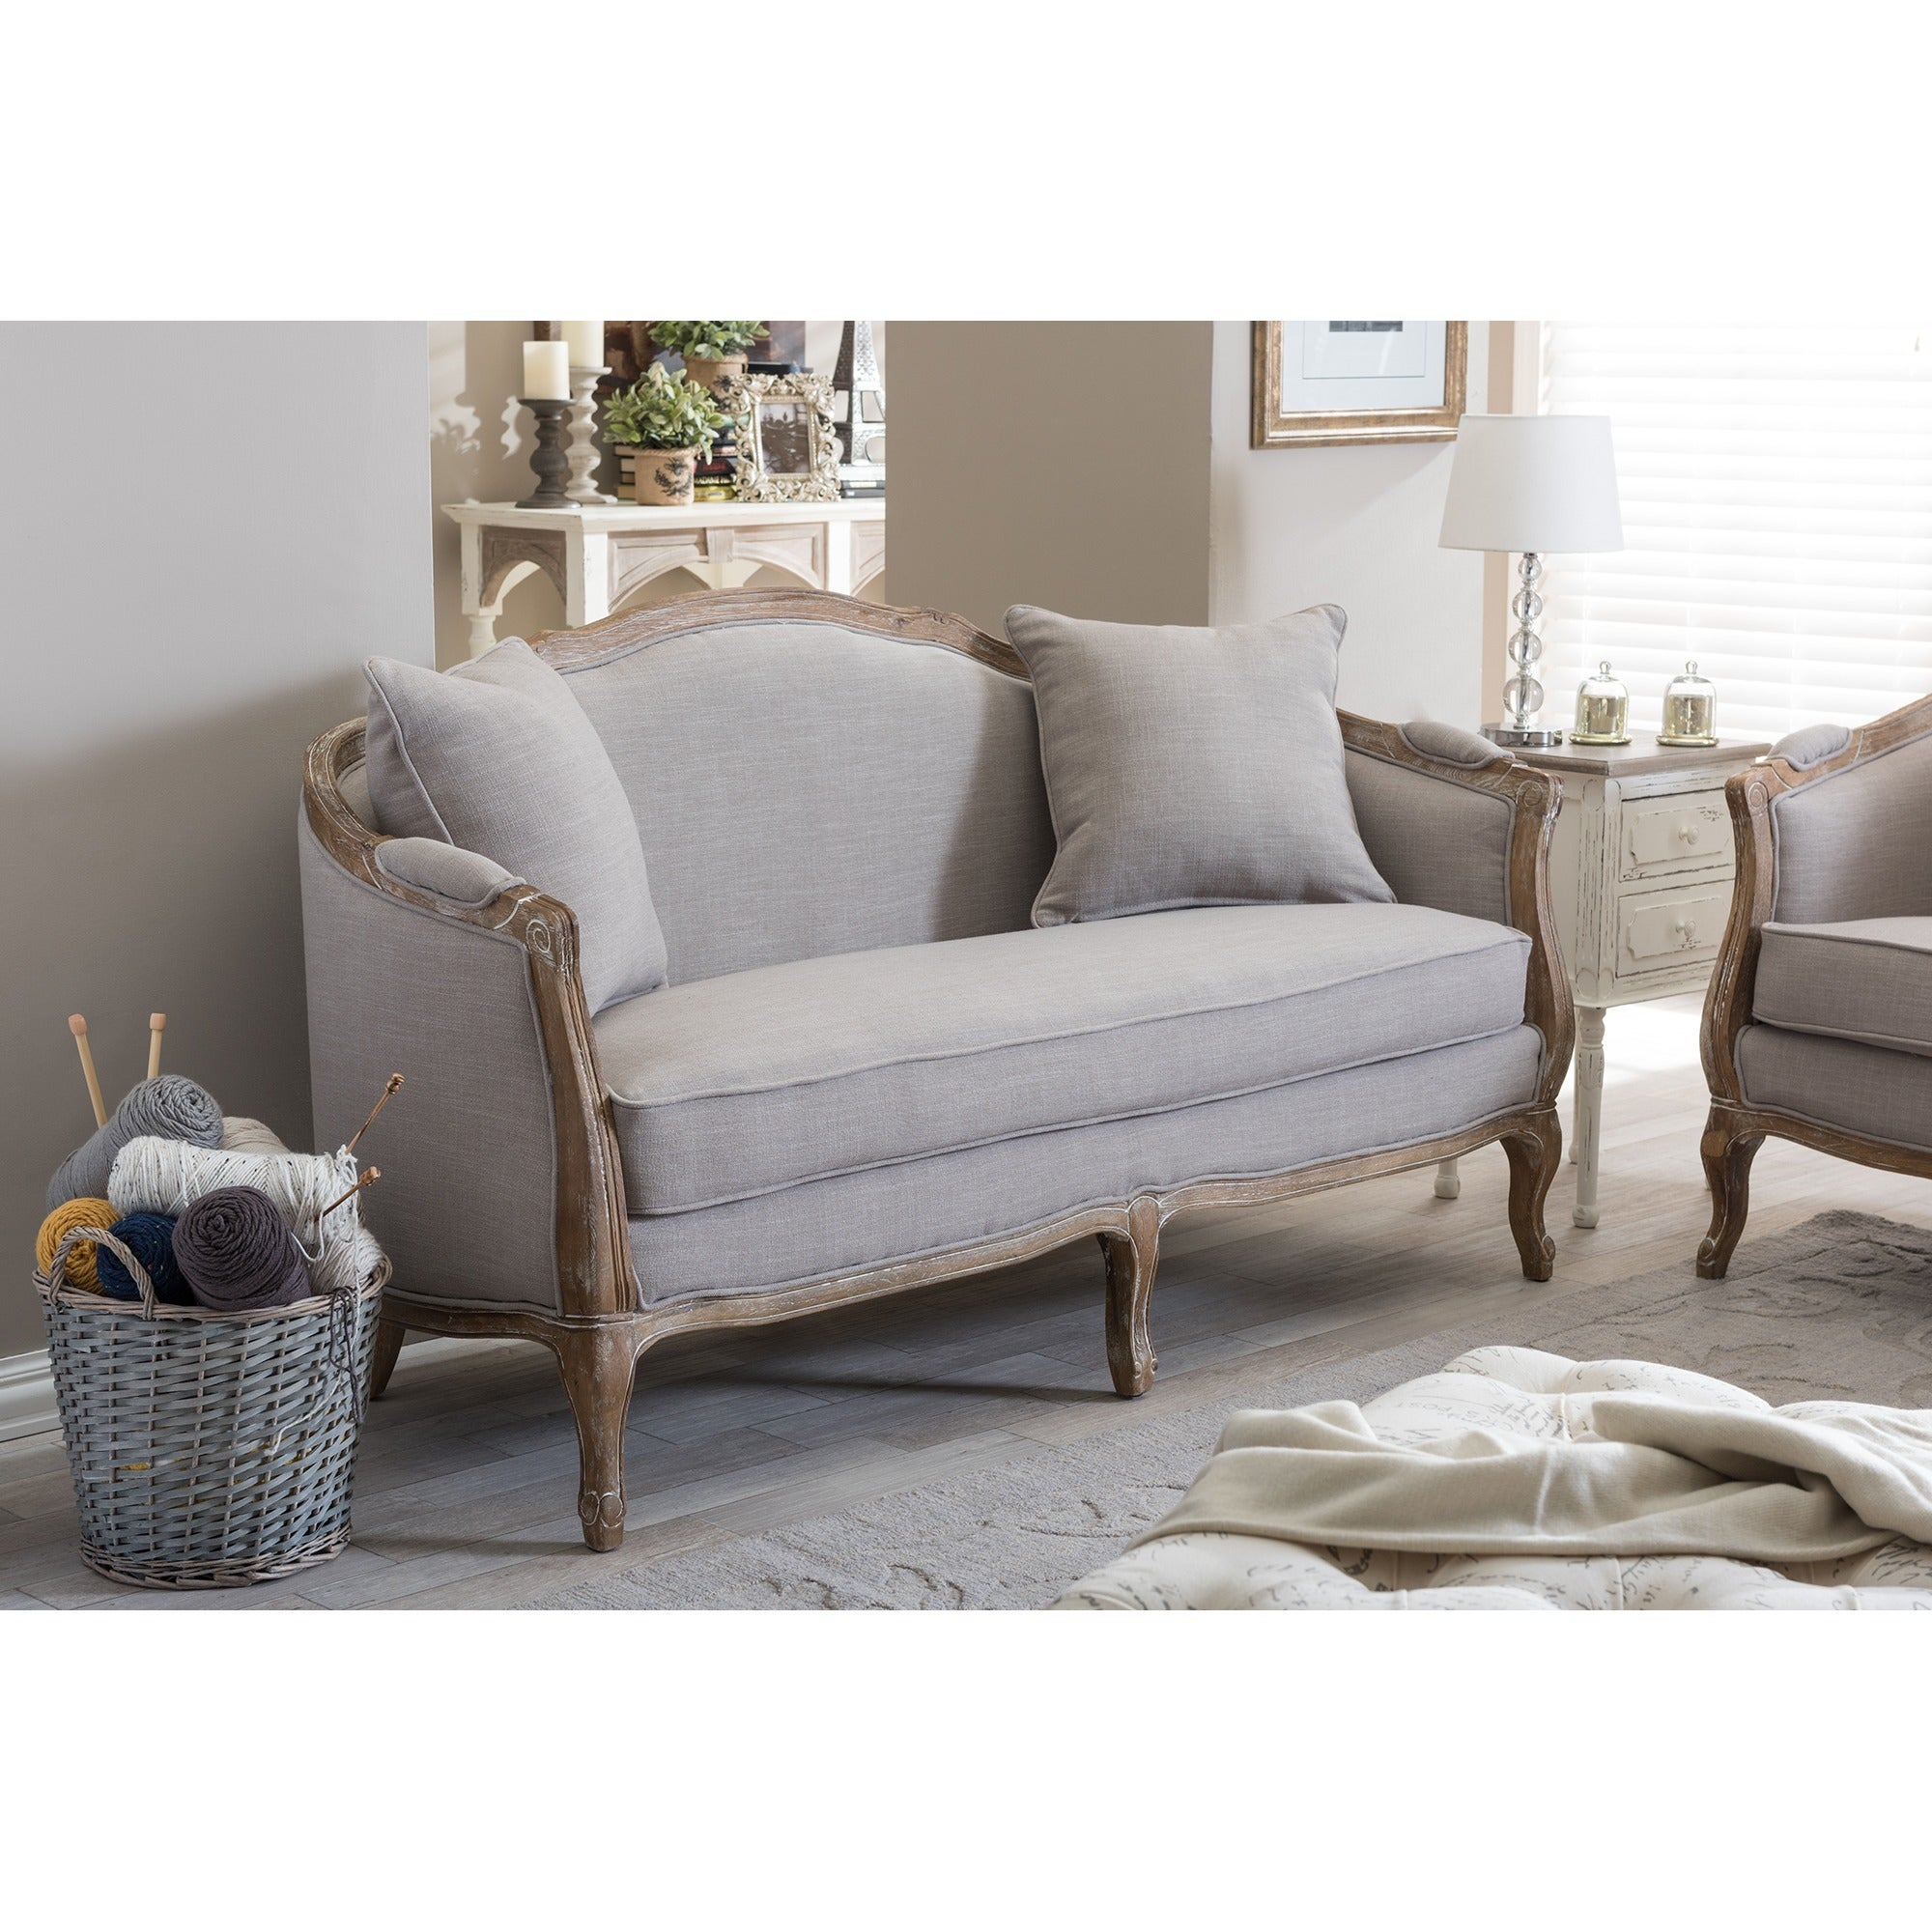 upholstered century painted f sale for style master french loveseat linen seating and country id loveseats furniture